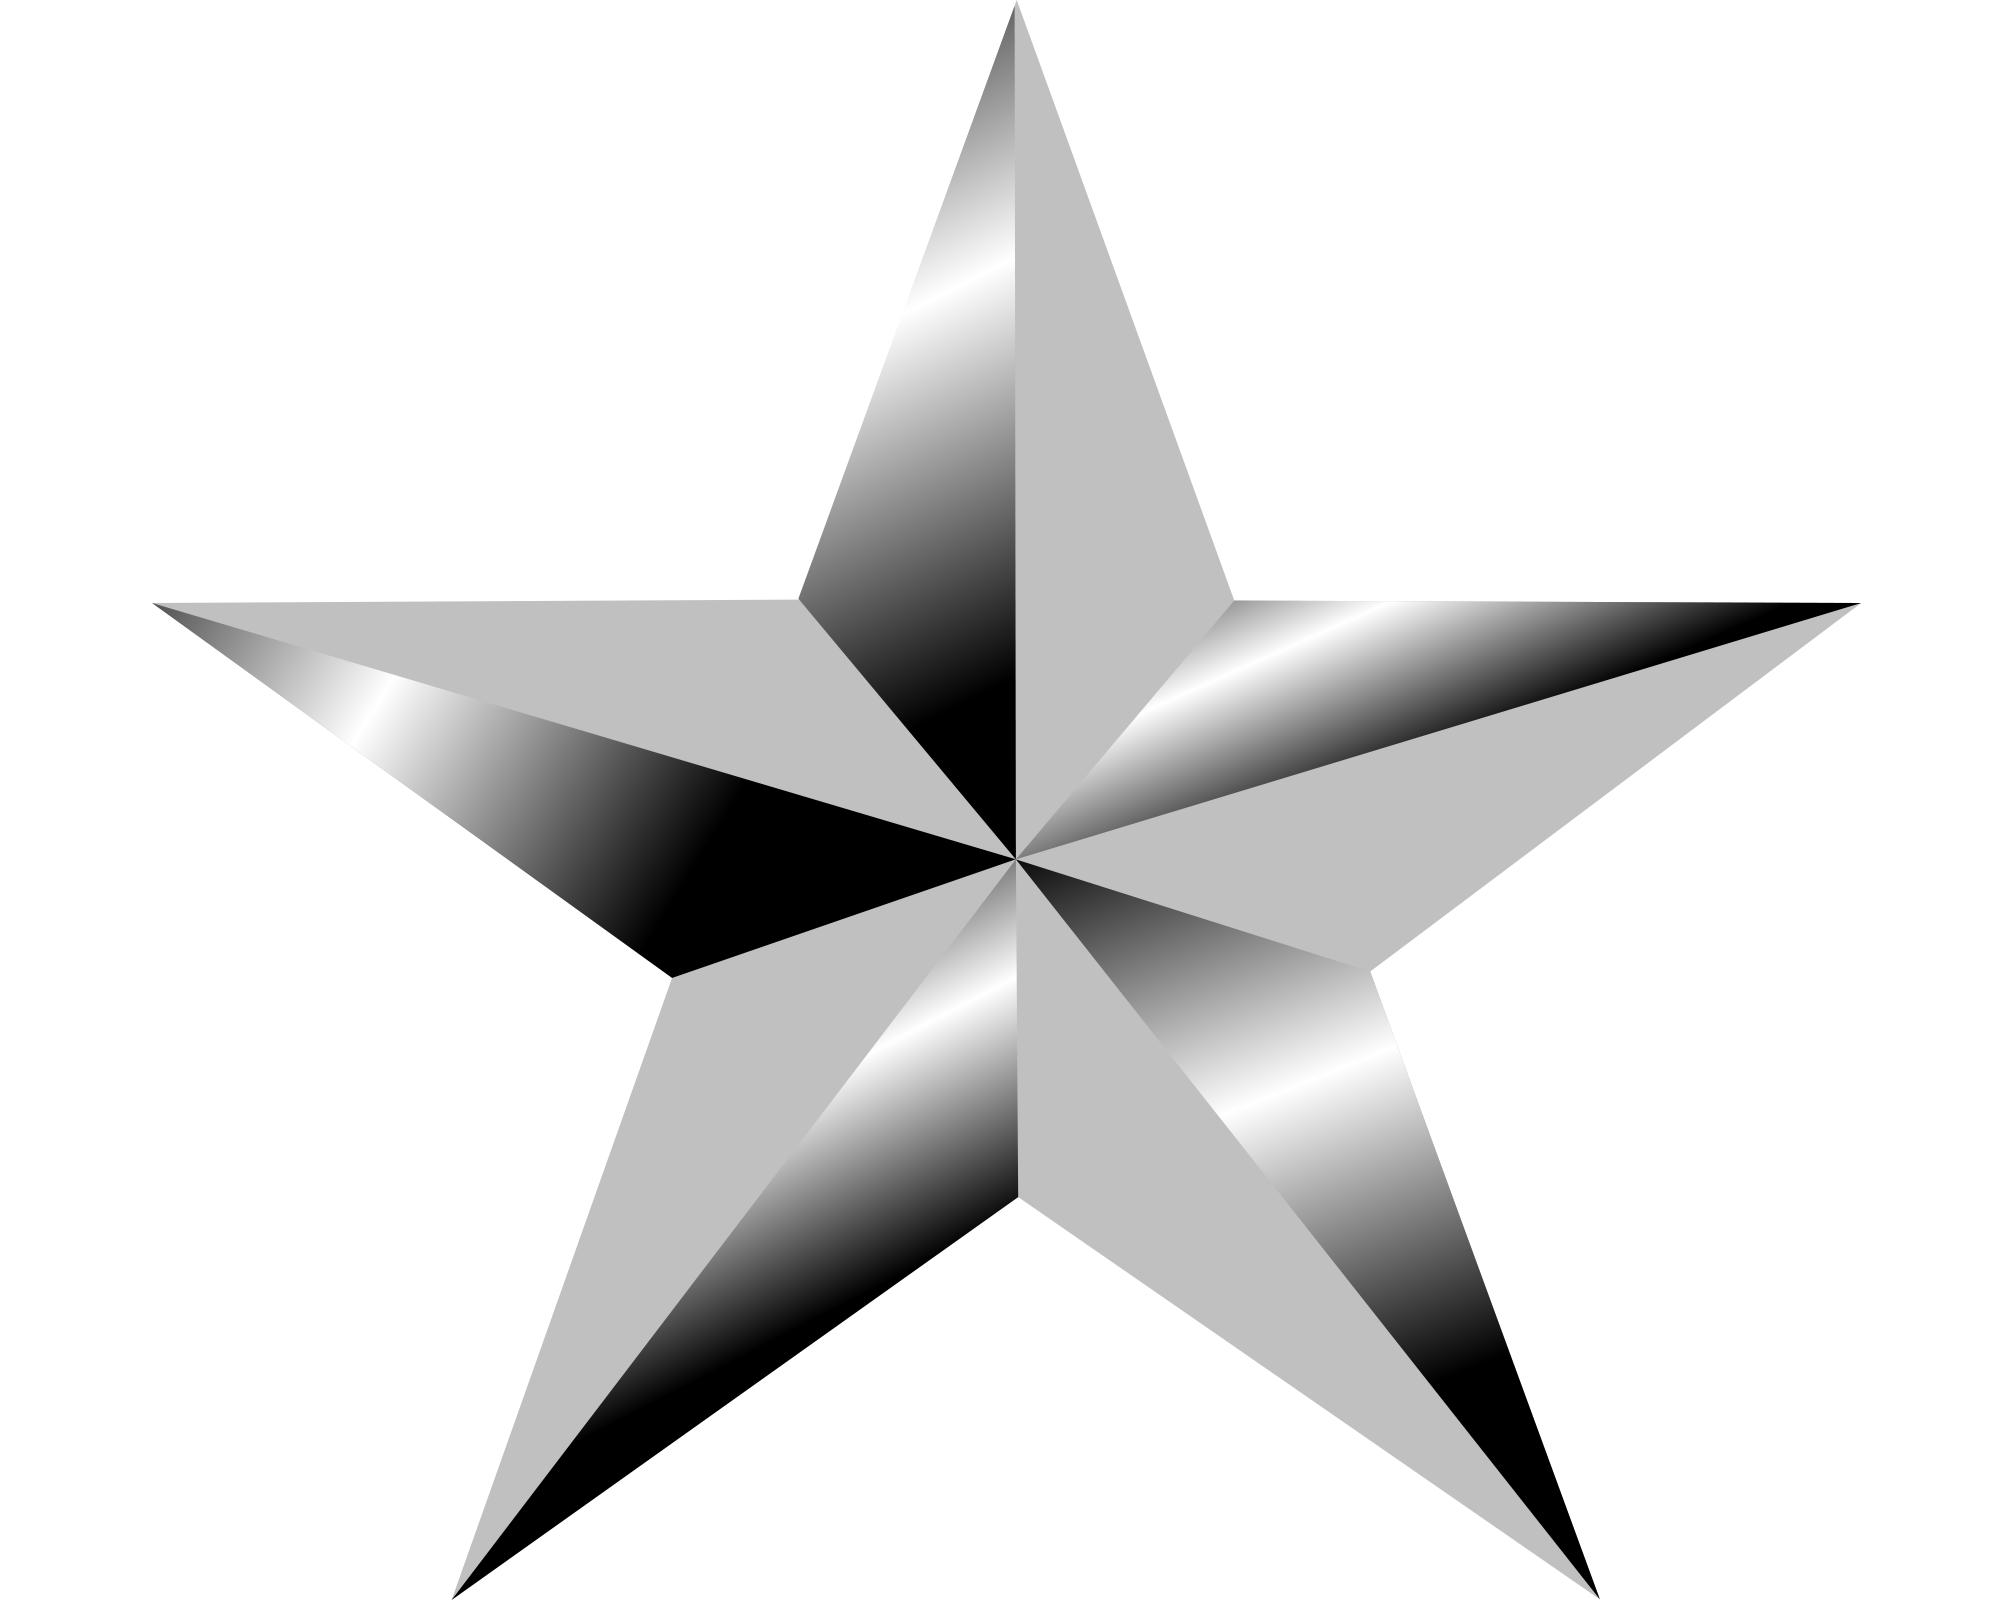 Silver PNG images free download.